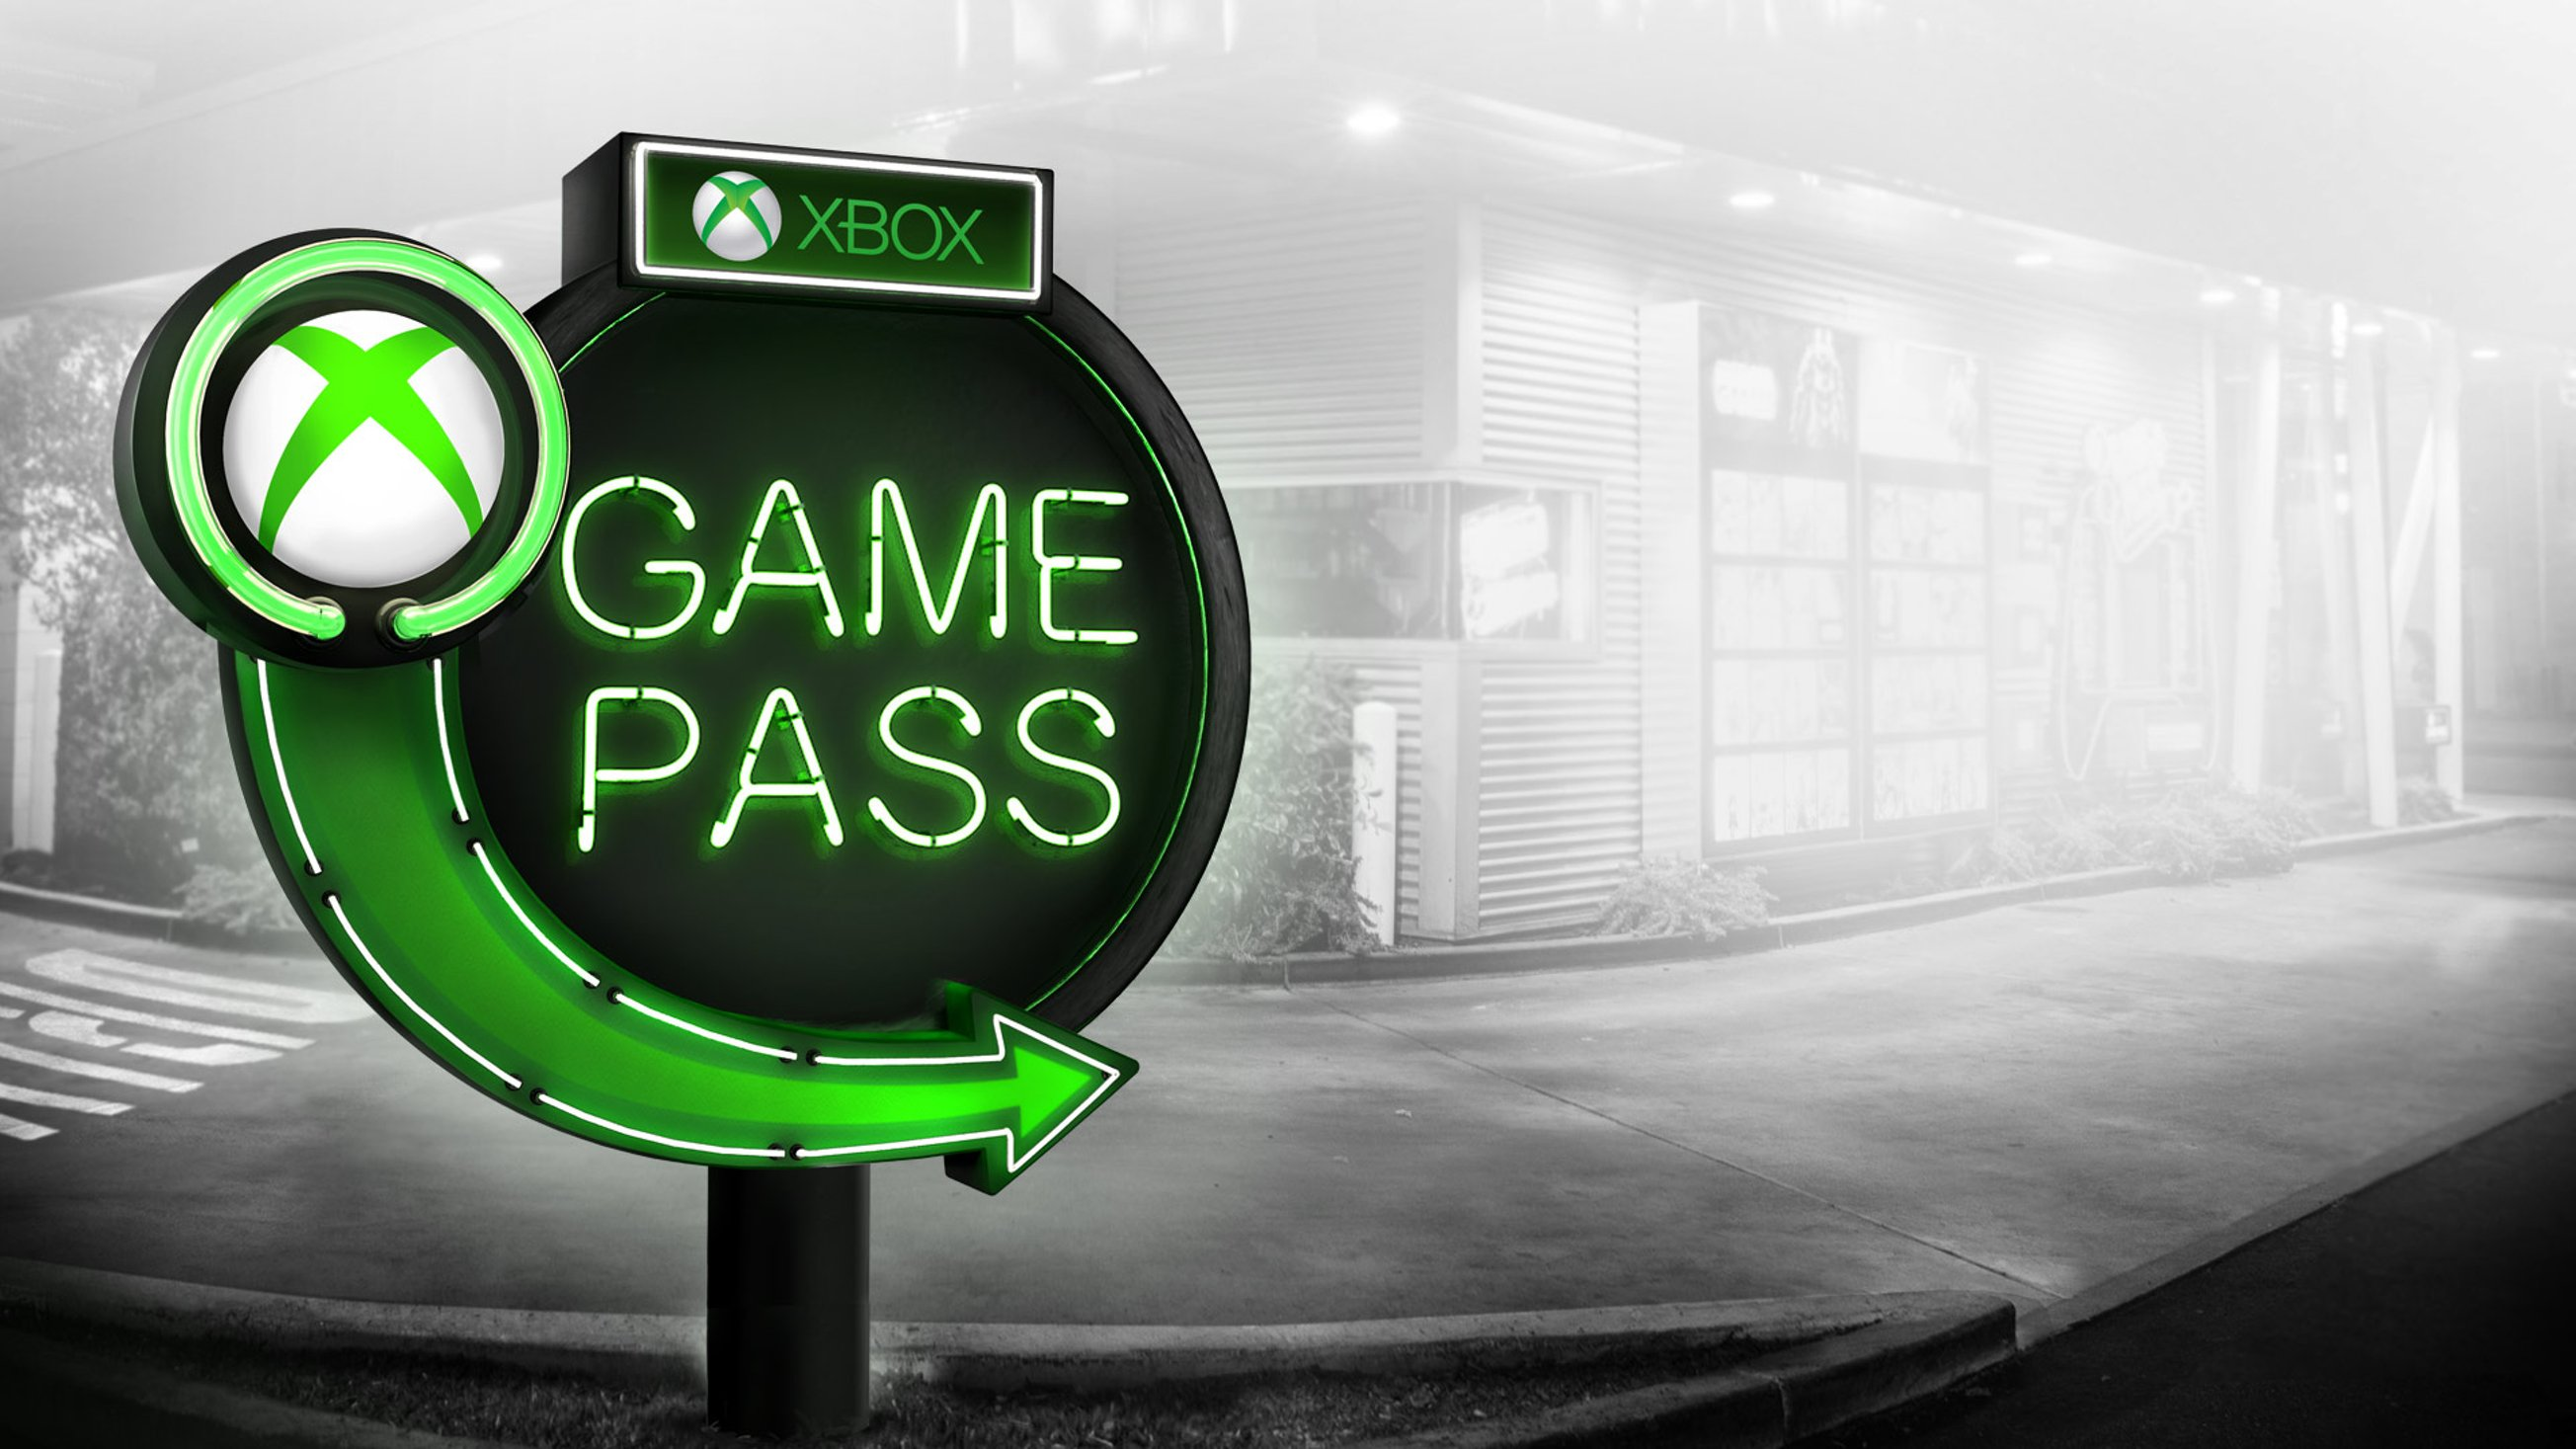 Xbox is hellbent on circumventing Apple's rules and getting game streaming on iOS screenshot